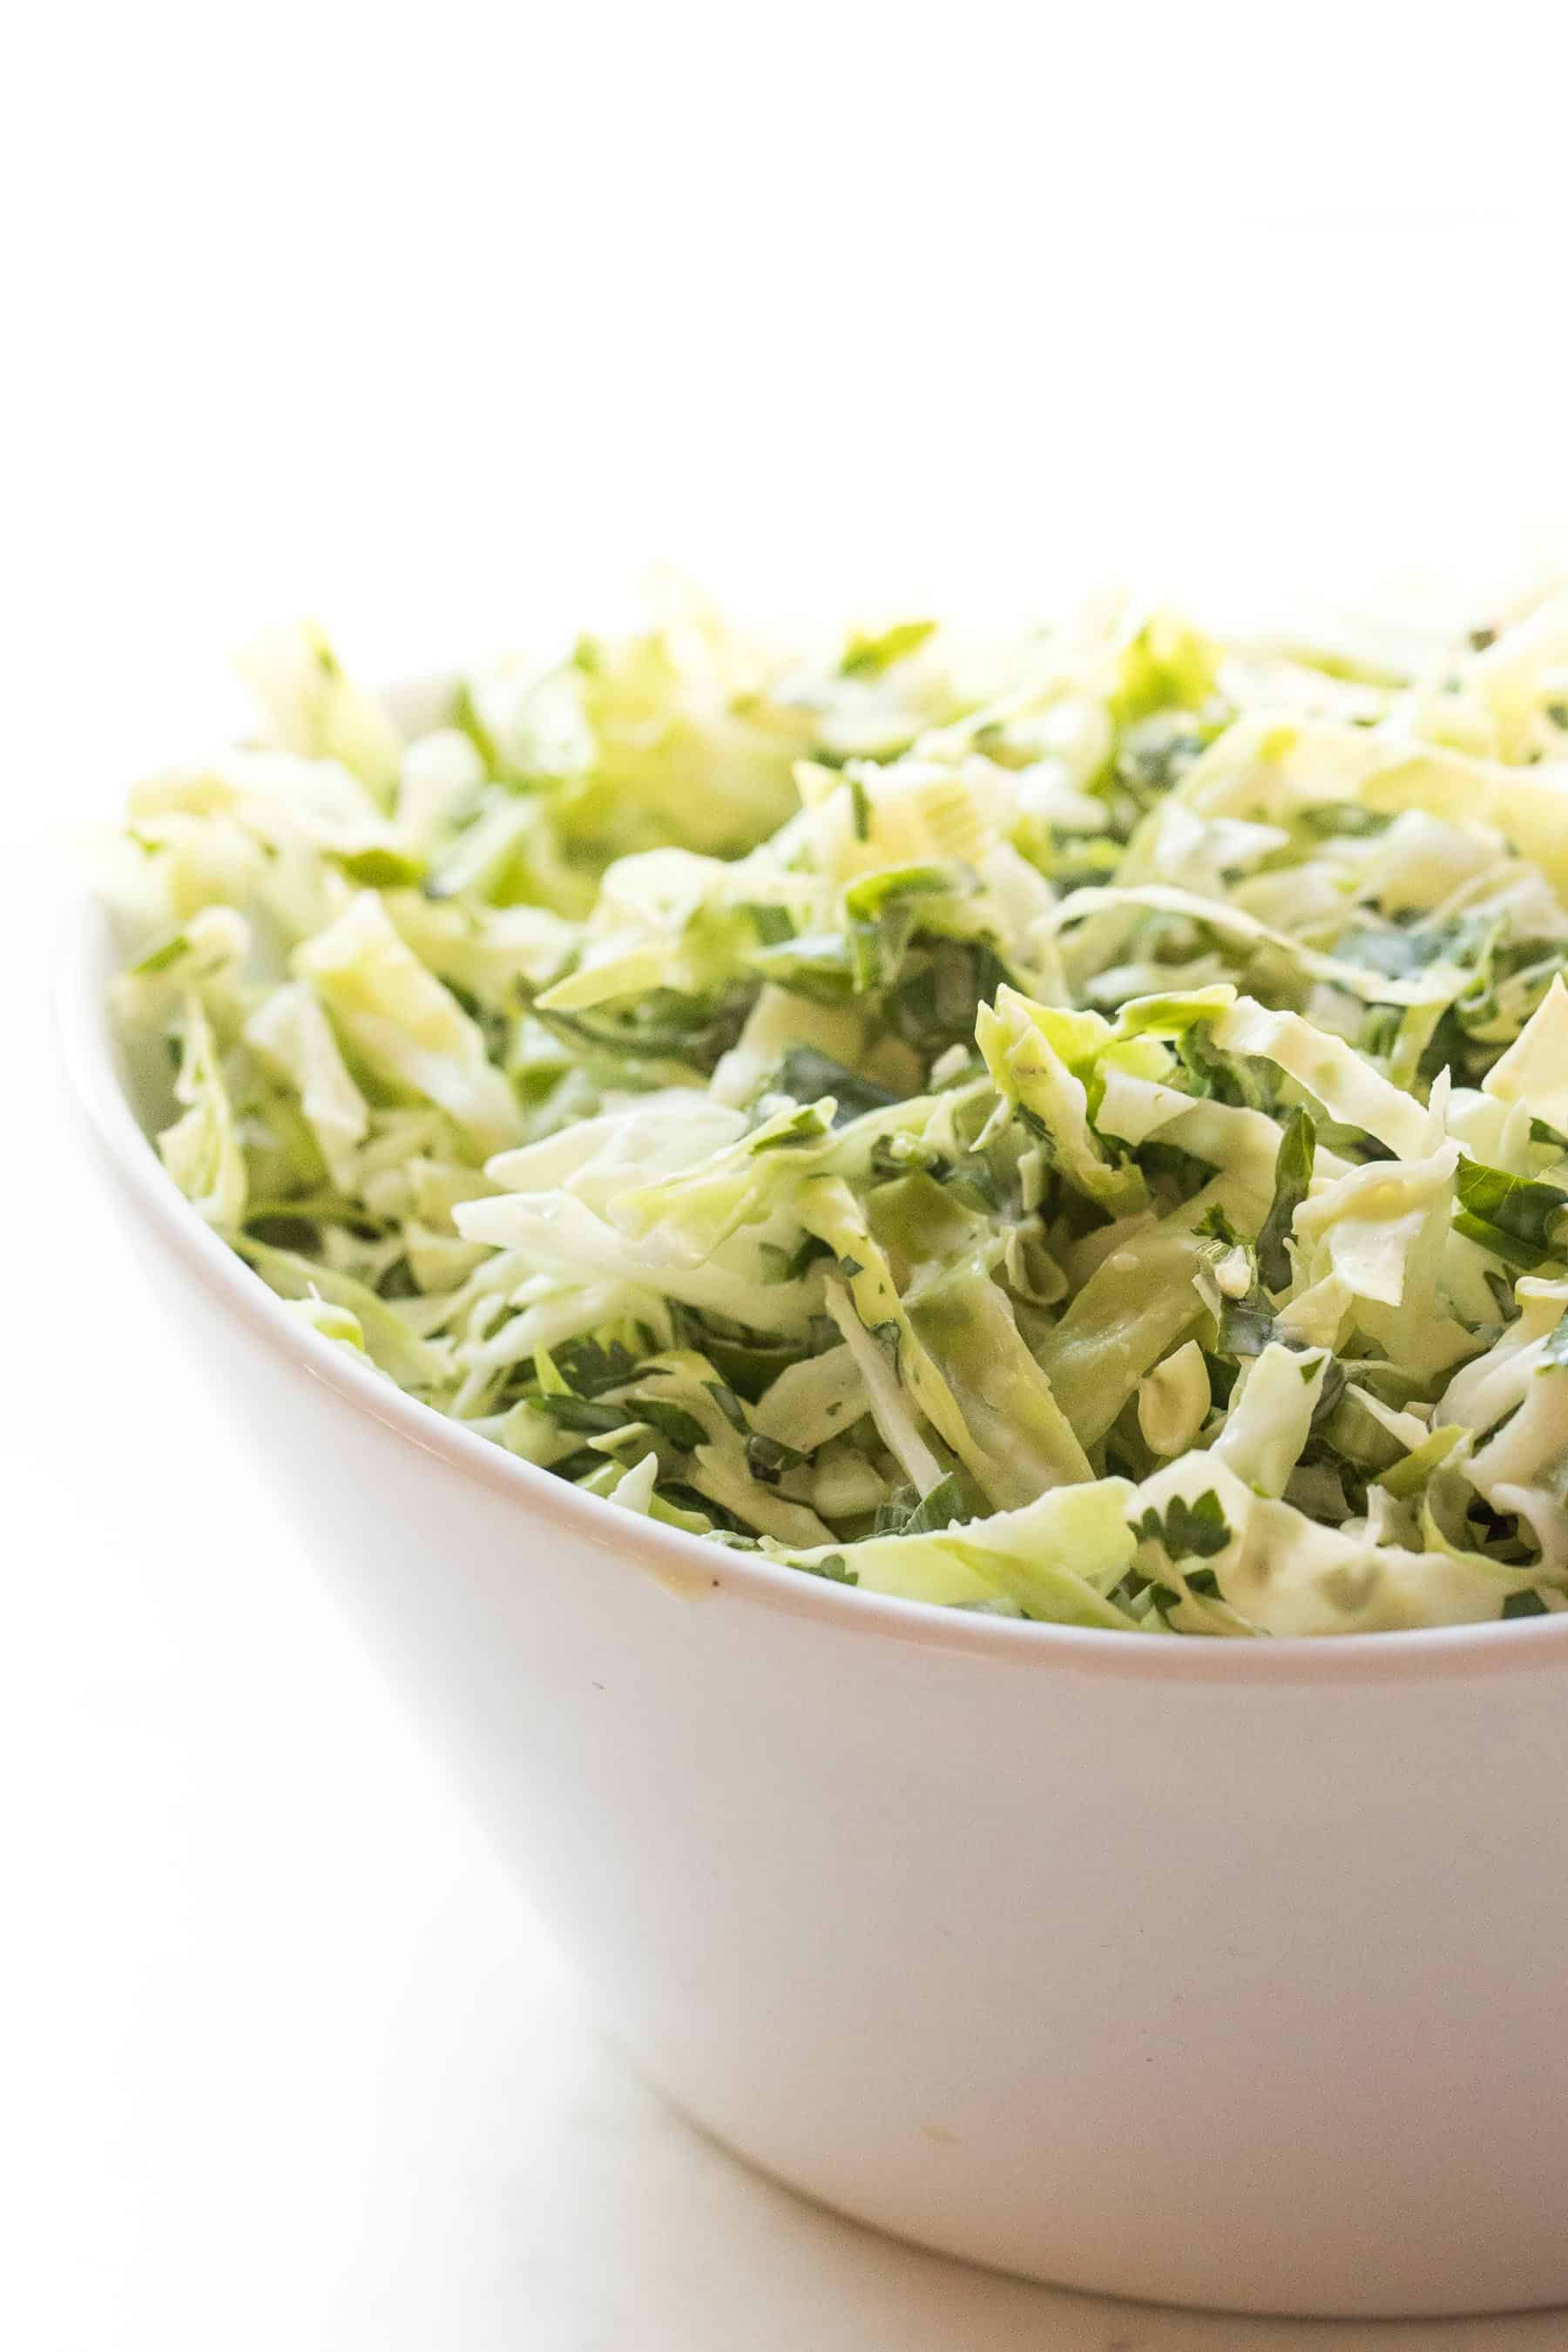 coleslaw in a white bowl and white background